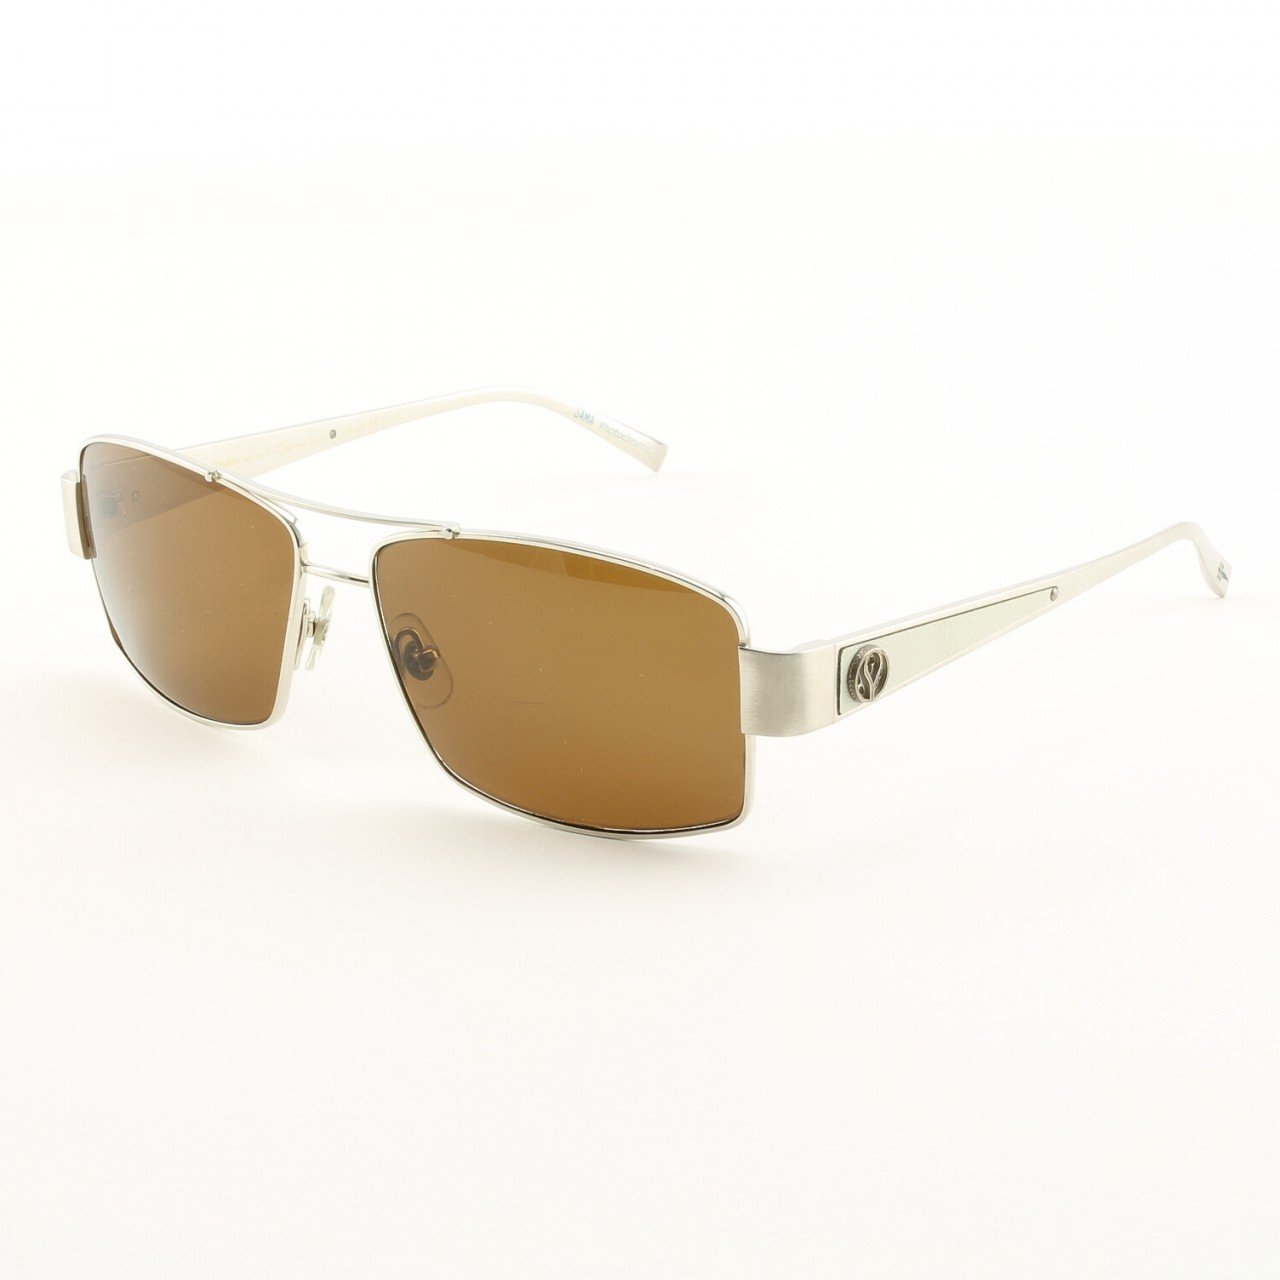 Loree Rodkin Jason Sunglasses by Sama Col. White Gold with Brown Lenses, Leather and Sterling Silver